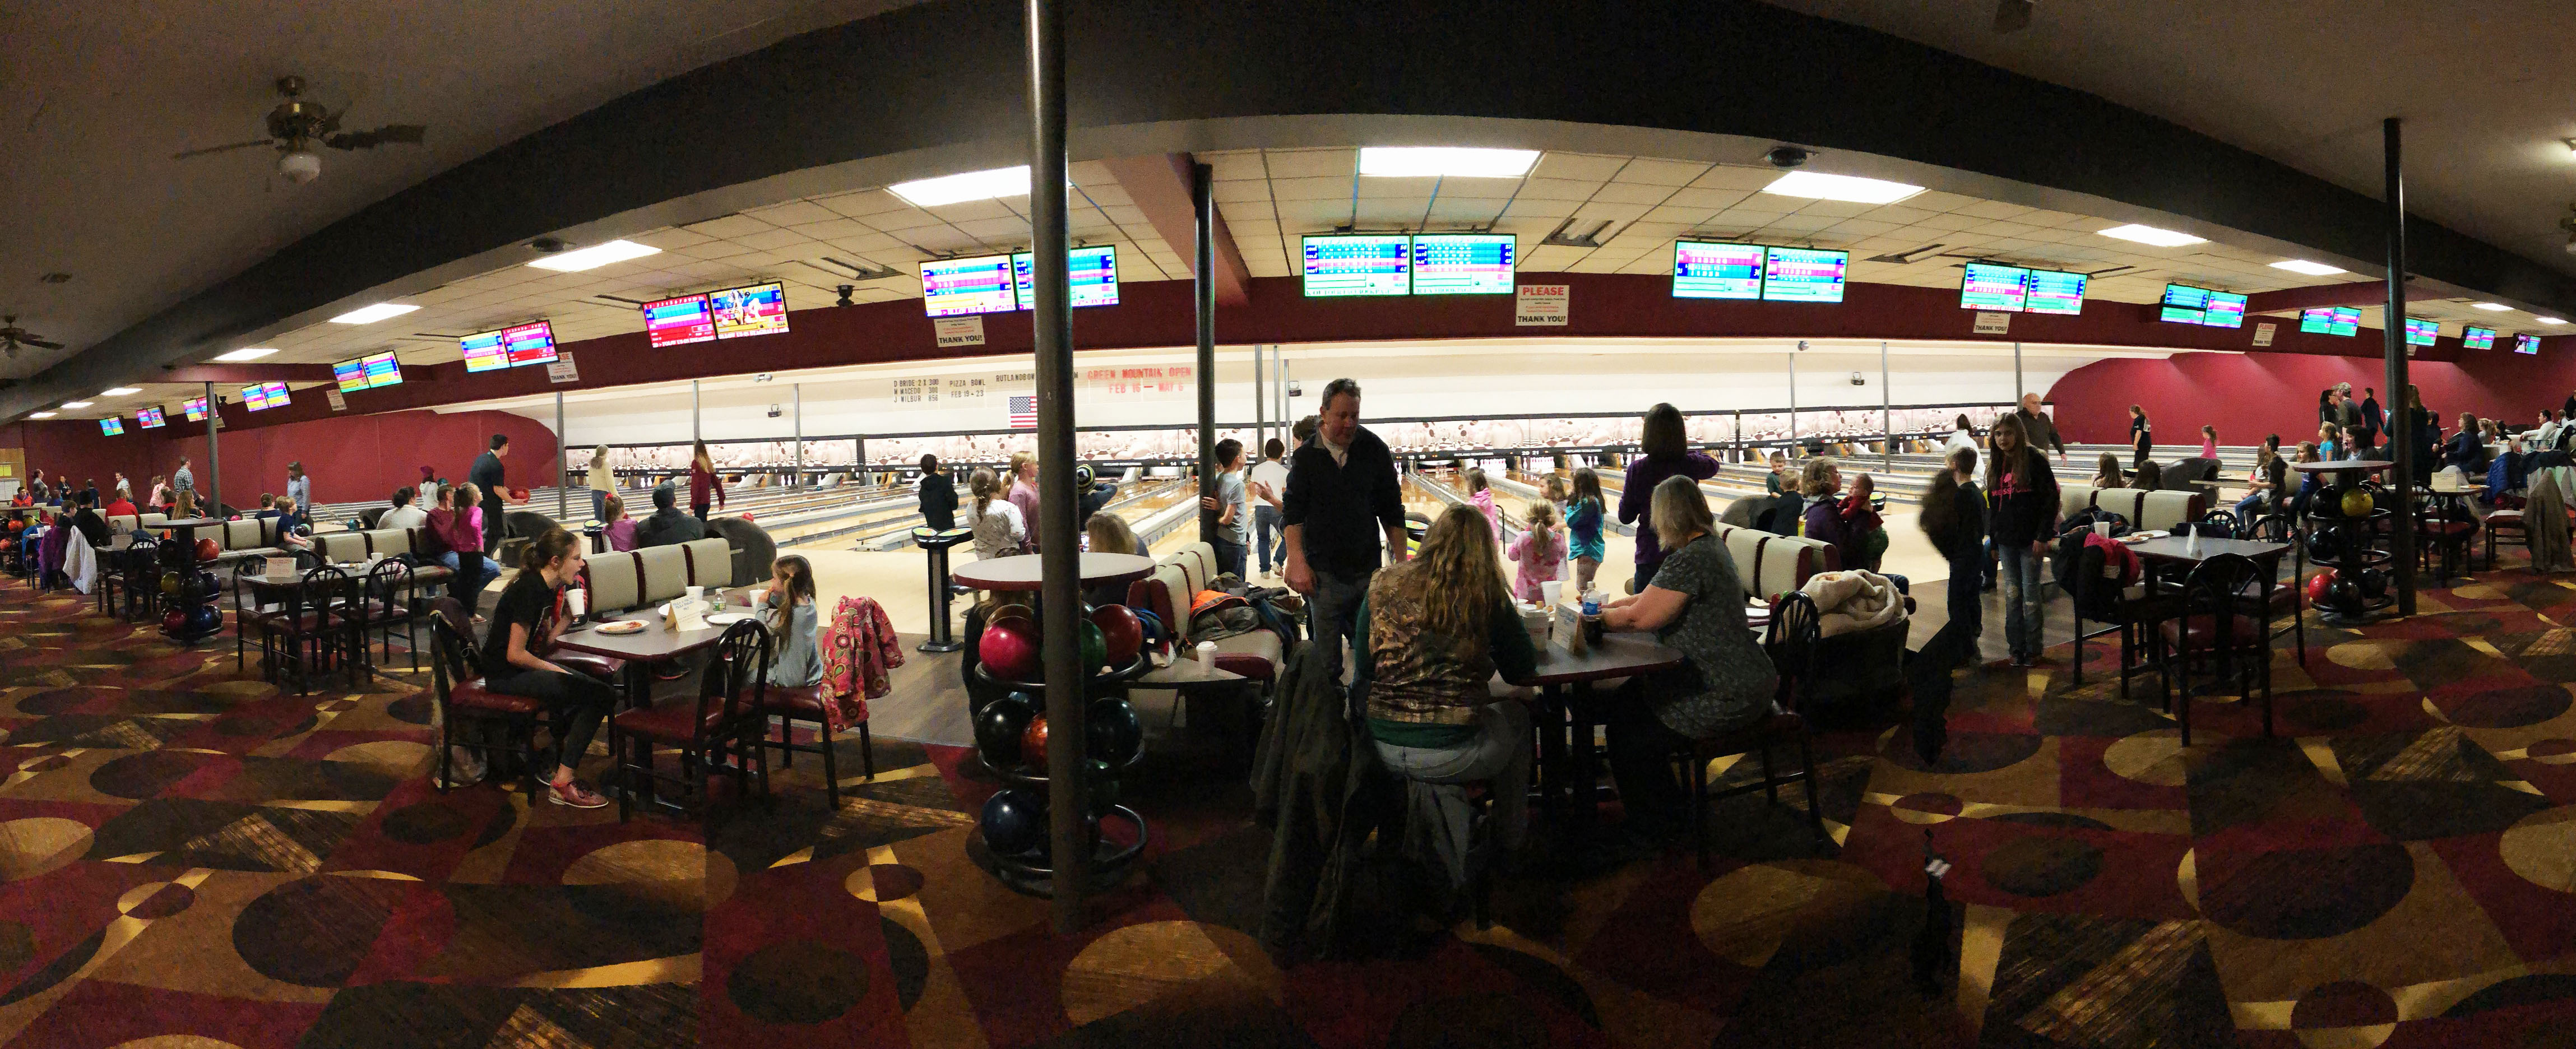 Hold Your Next Party or Event at Rutland Bowlerama